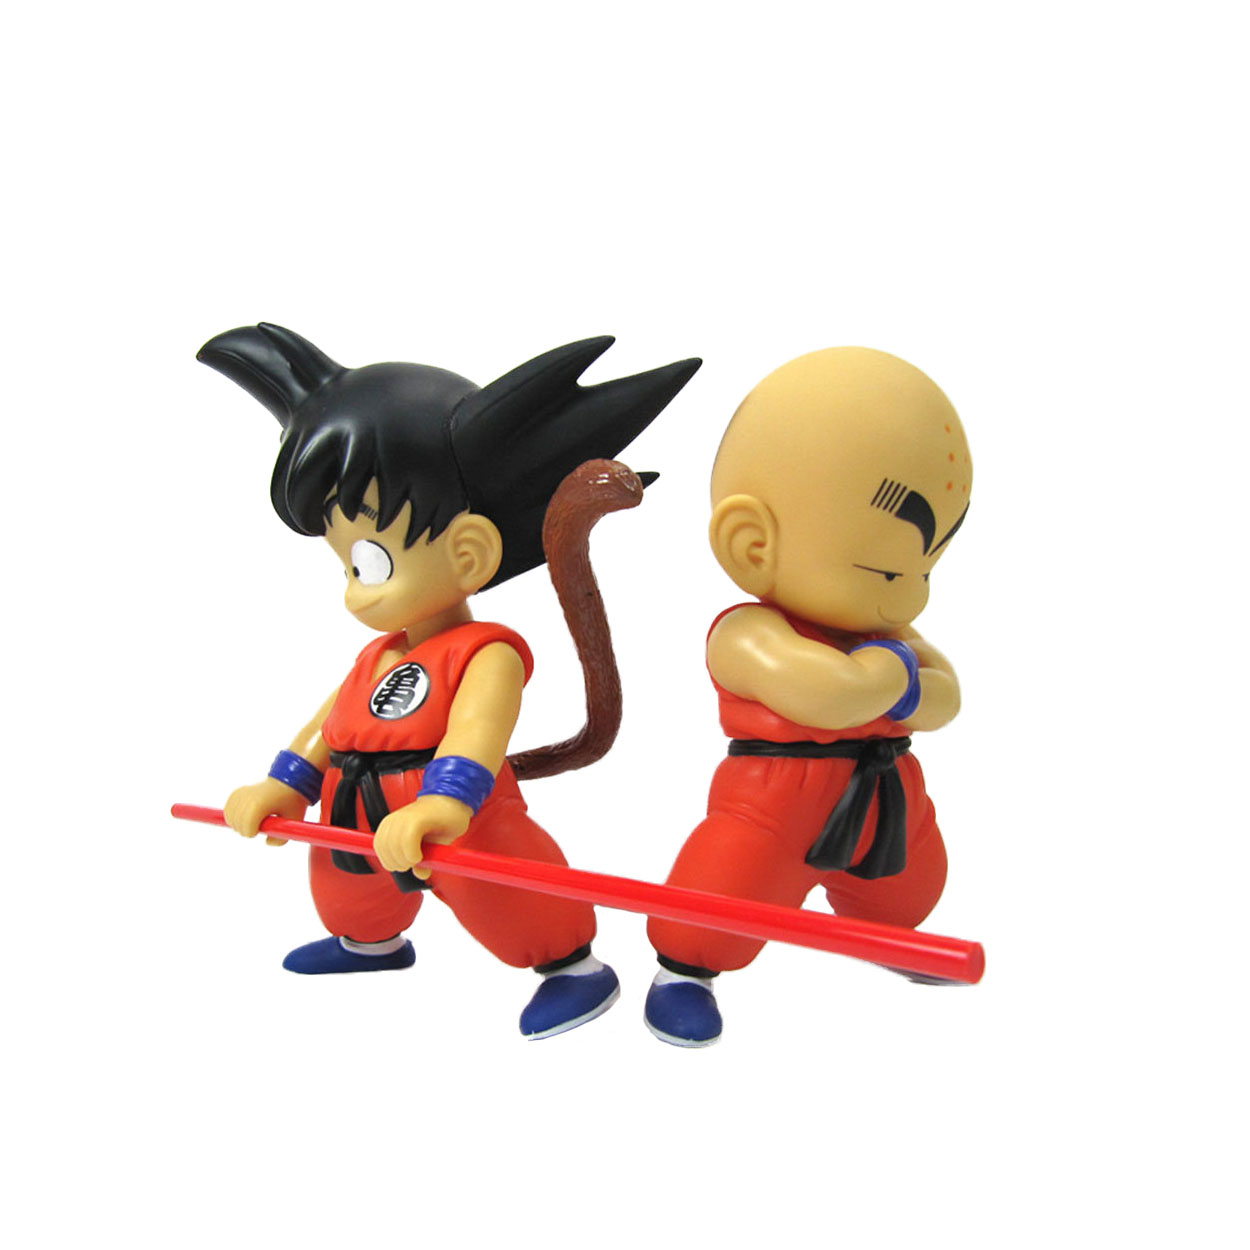 ФОТО Chanycore 21CM 2pcs/set Anime Dragon Ball Z Son GOKU Krillin Super Saiyan Action Figures crystal balls PVC Limit Boxed Gift Toy